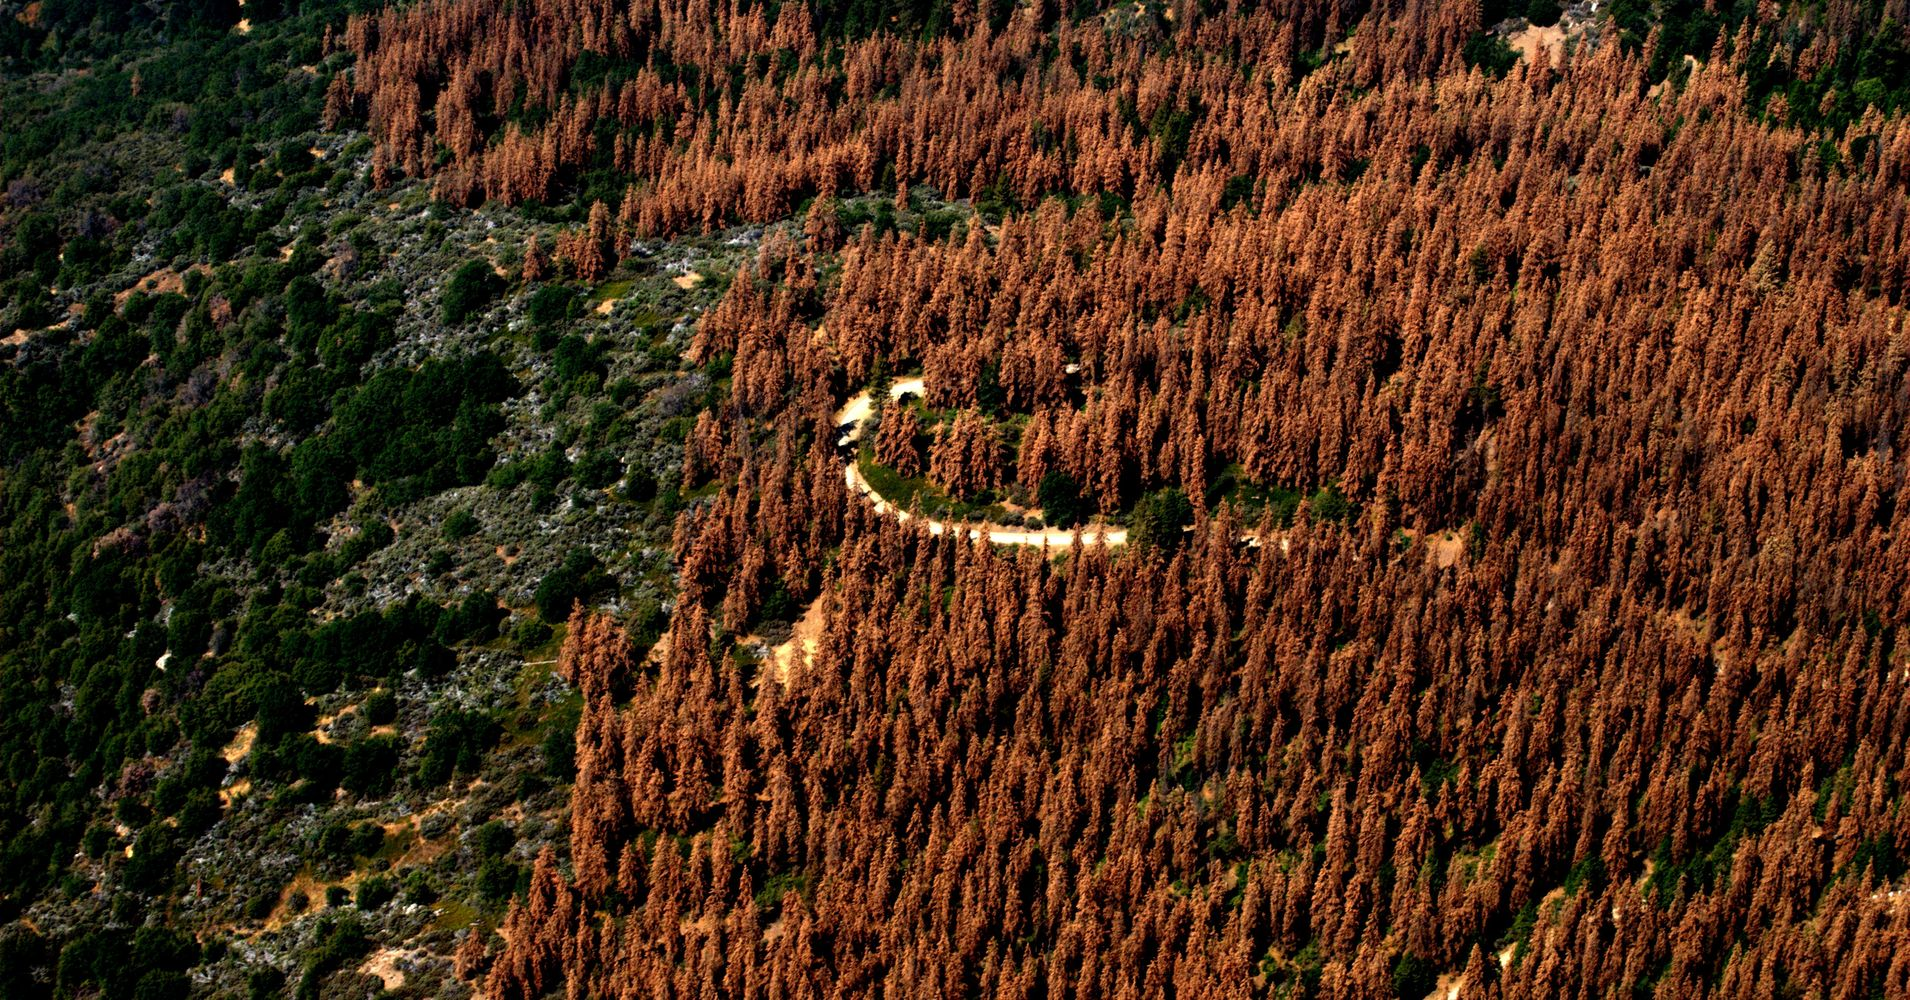 An Unprecedented 102 Million Trees Have Died In